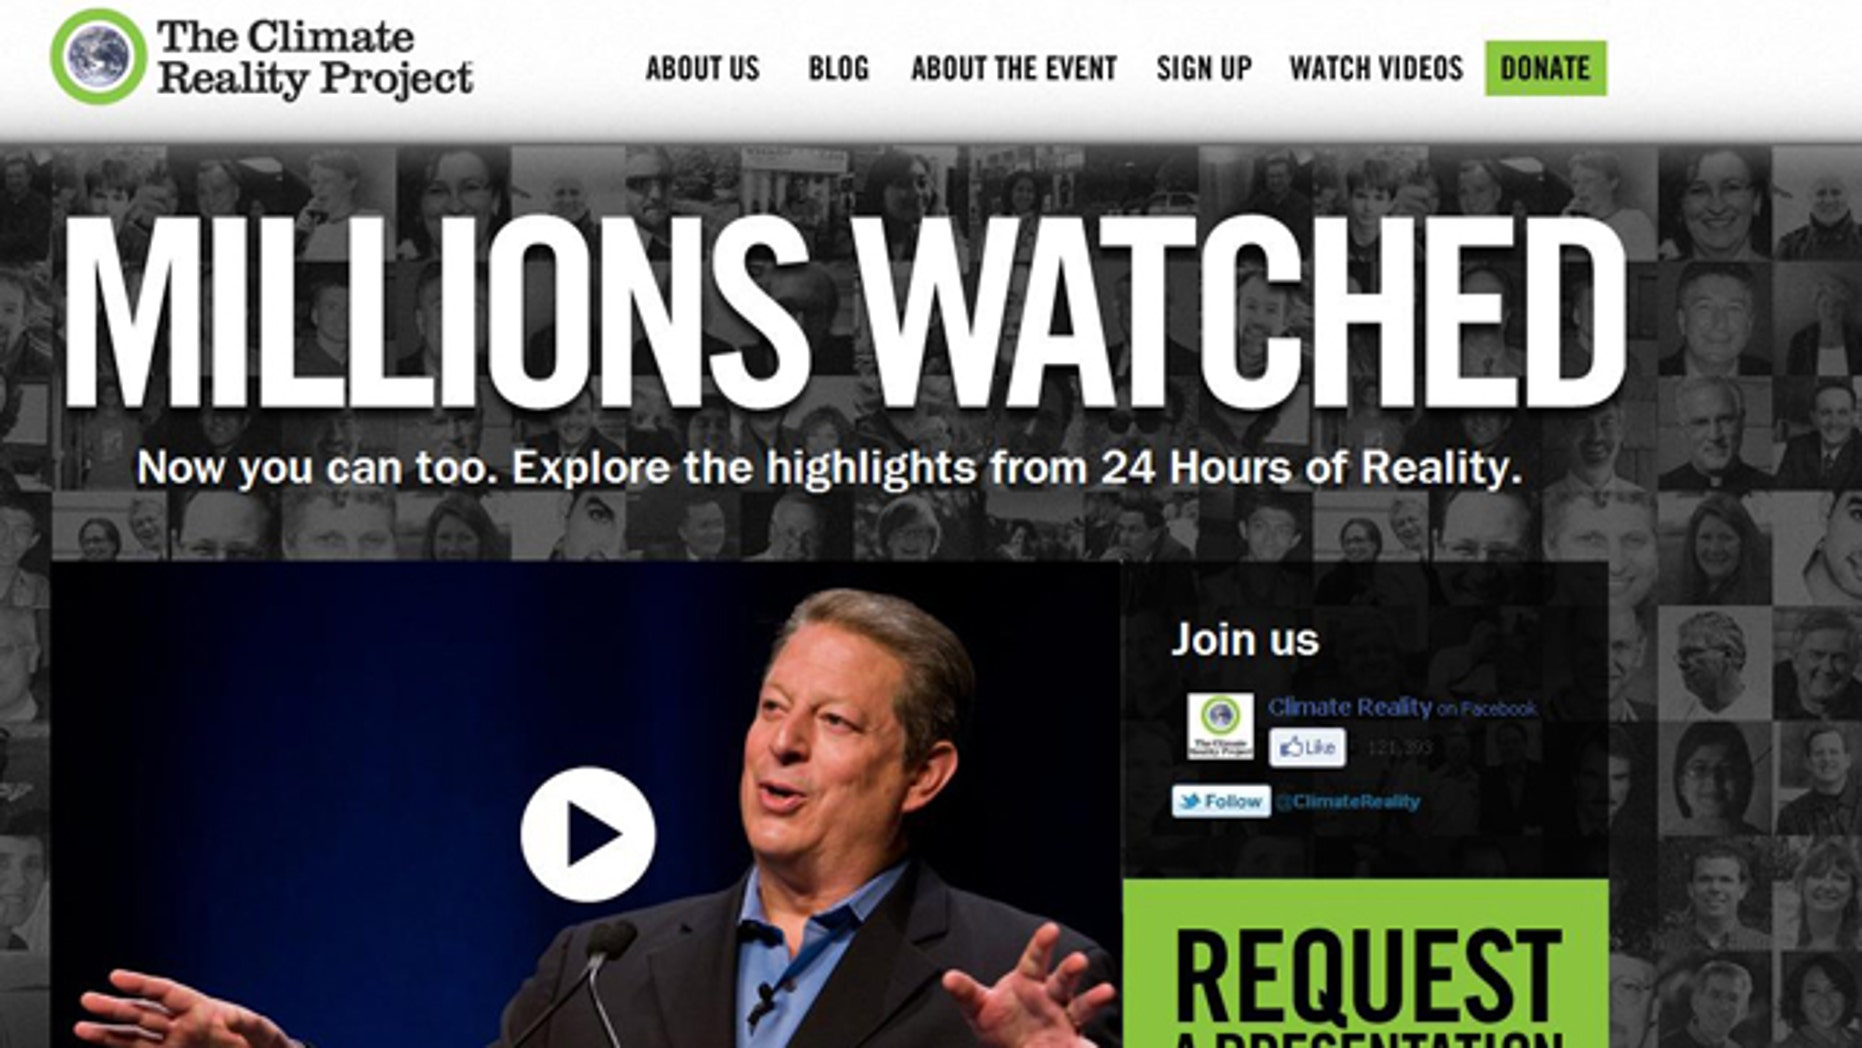 A screenshot of the website for Al Gore's Climate Reality Project, a 24-hour broadcast about the environment that the site claims million watched. Or did they?